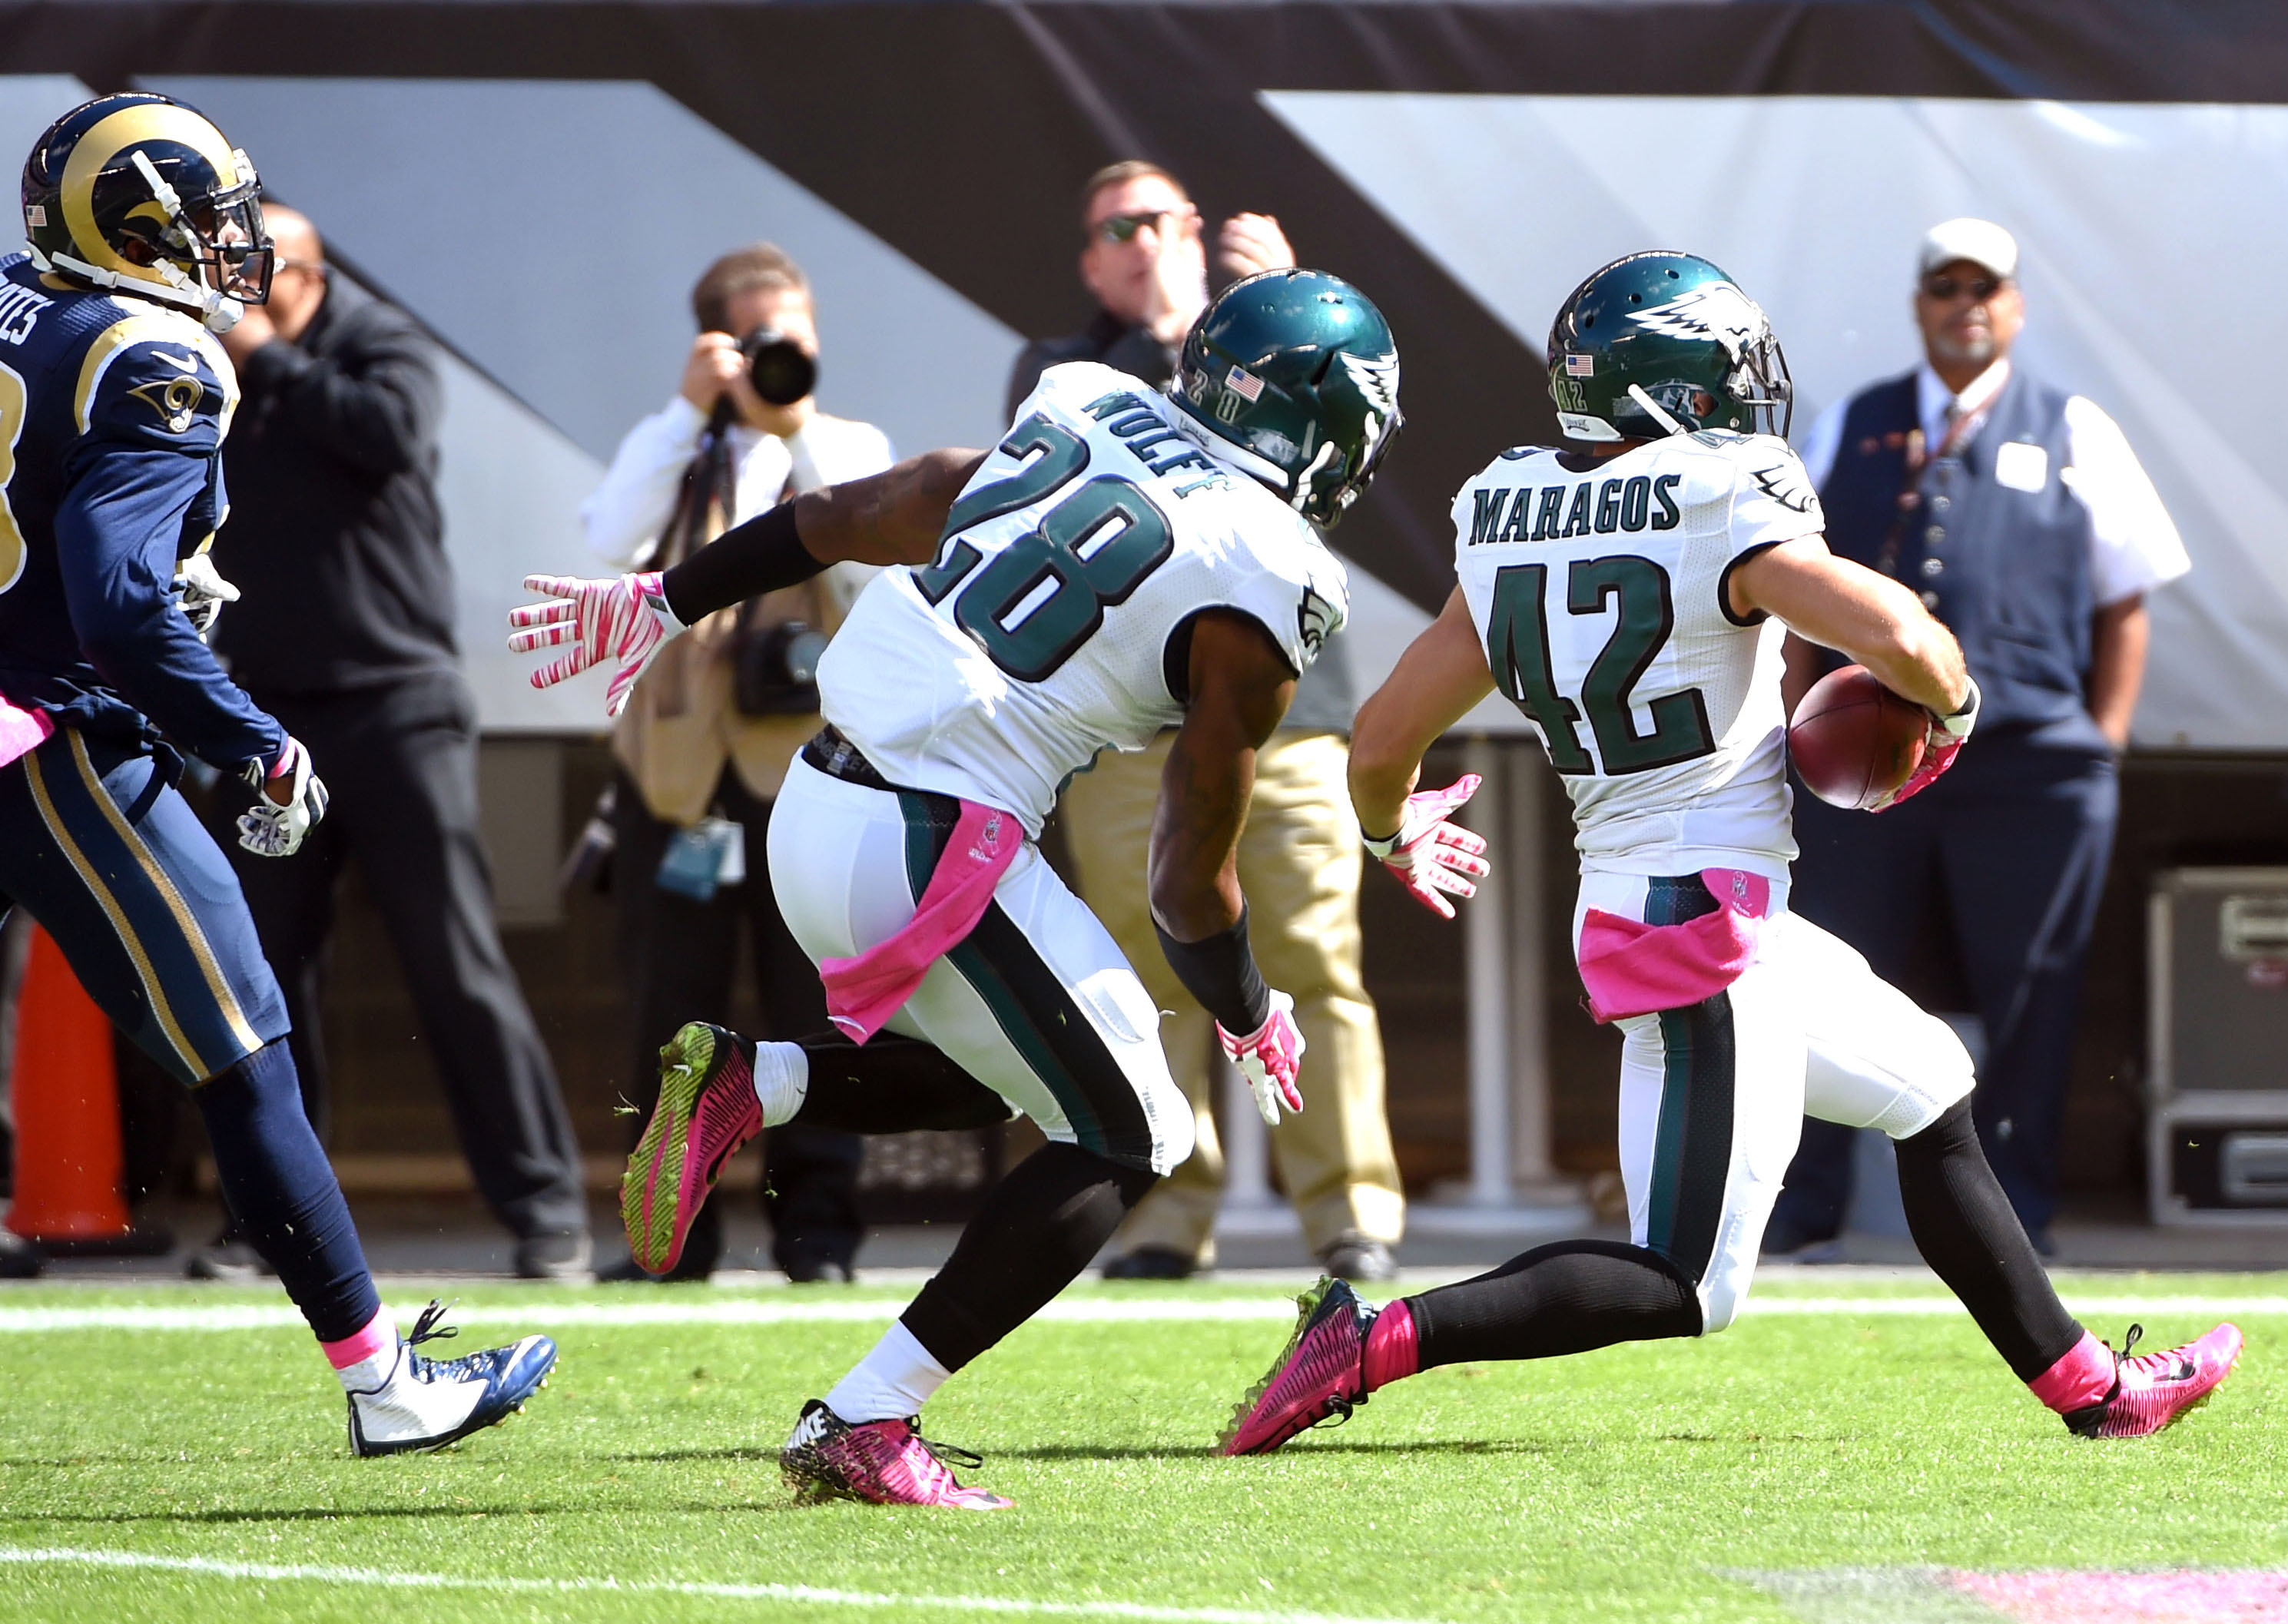 8126469-nfl-st.-louis-rams-at-philadelphia-eagles